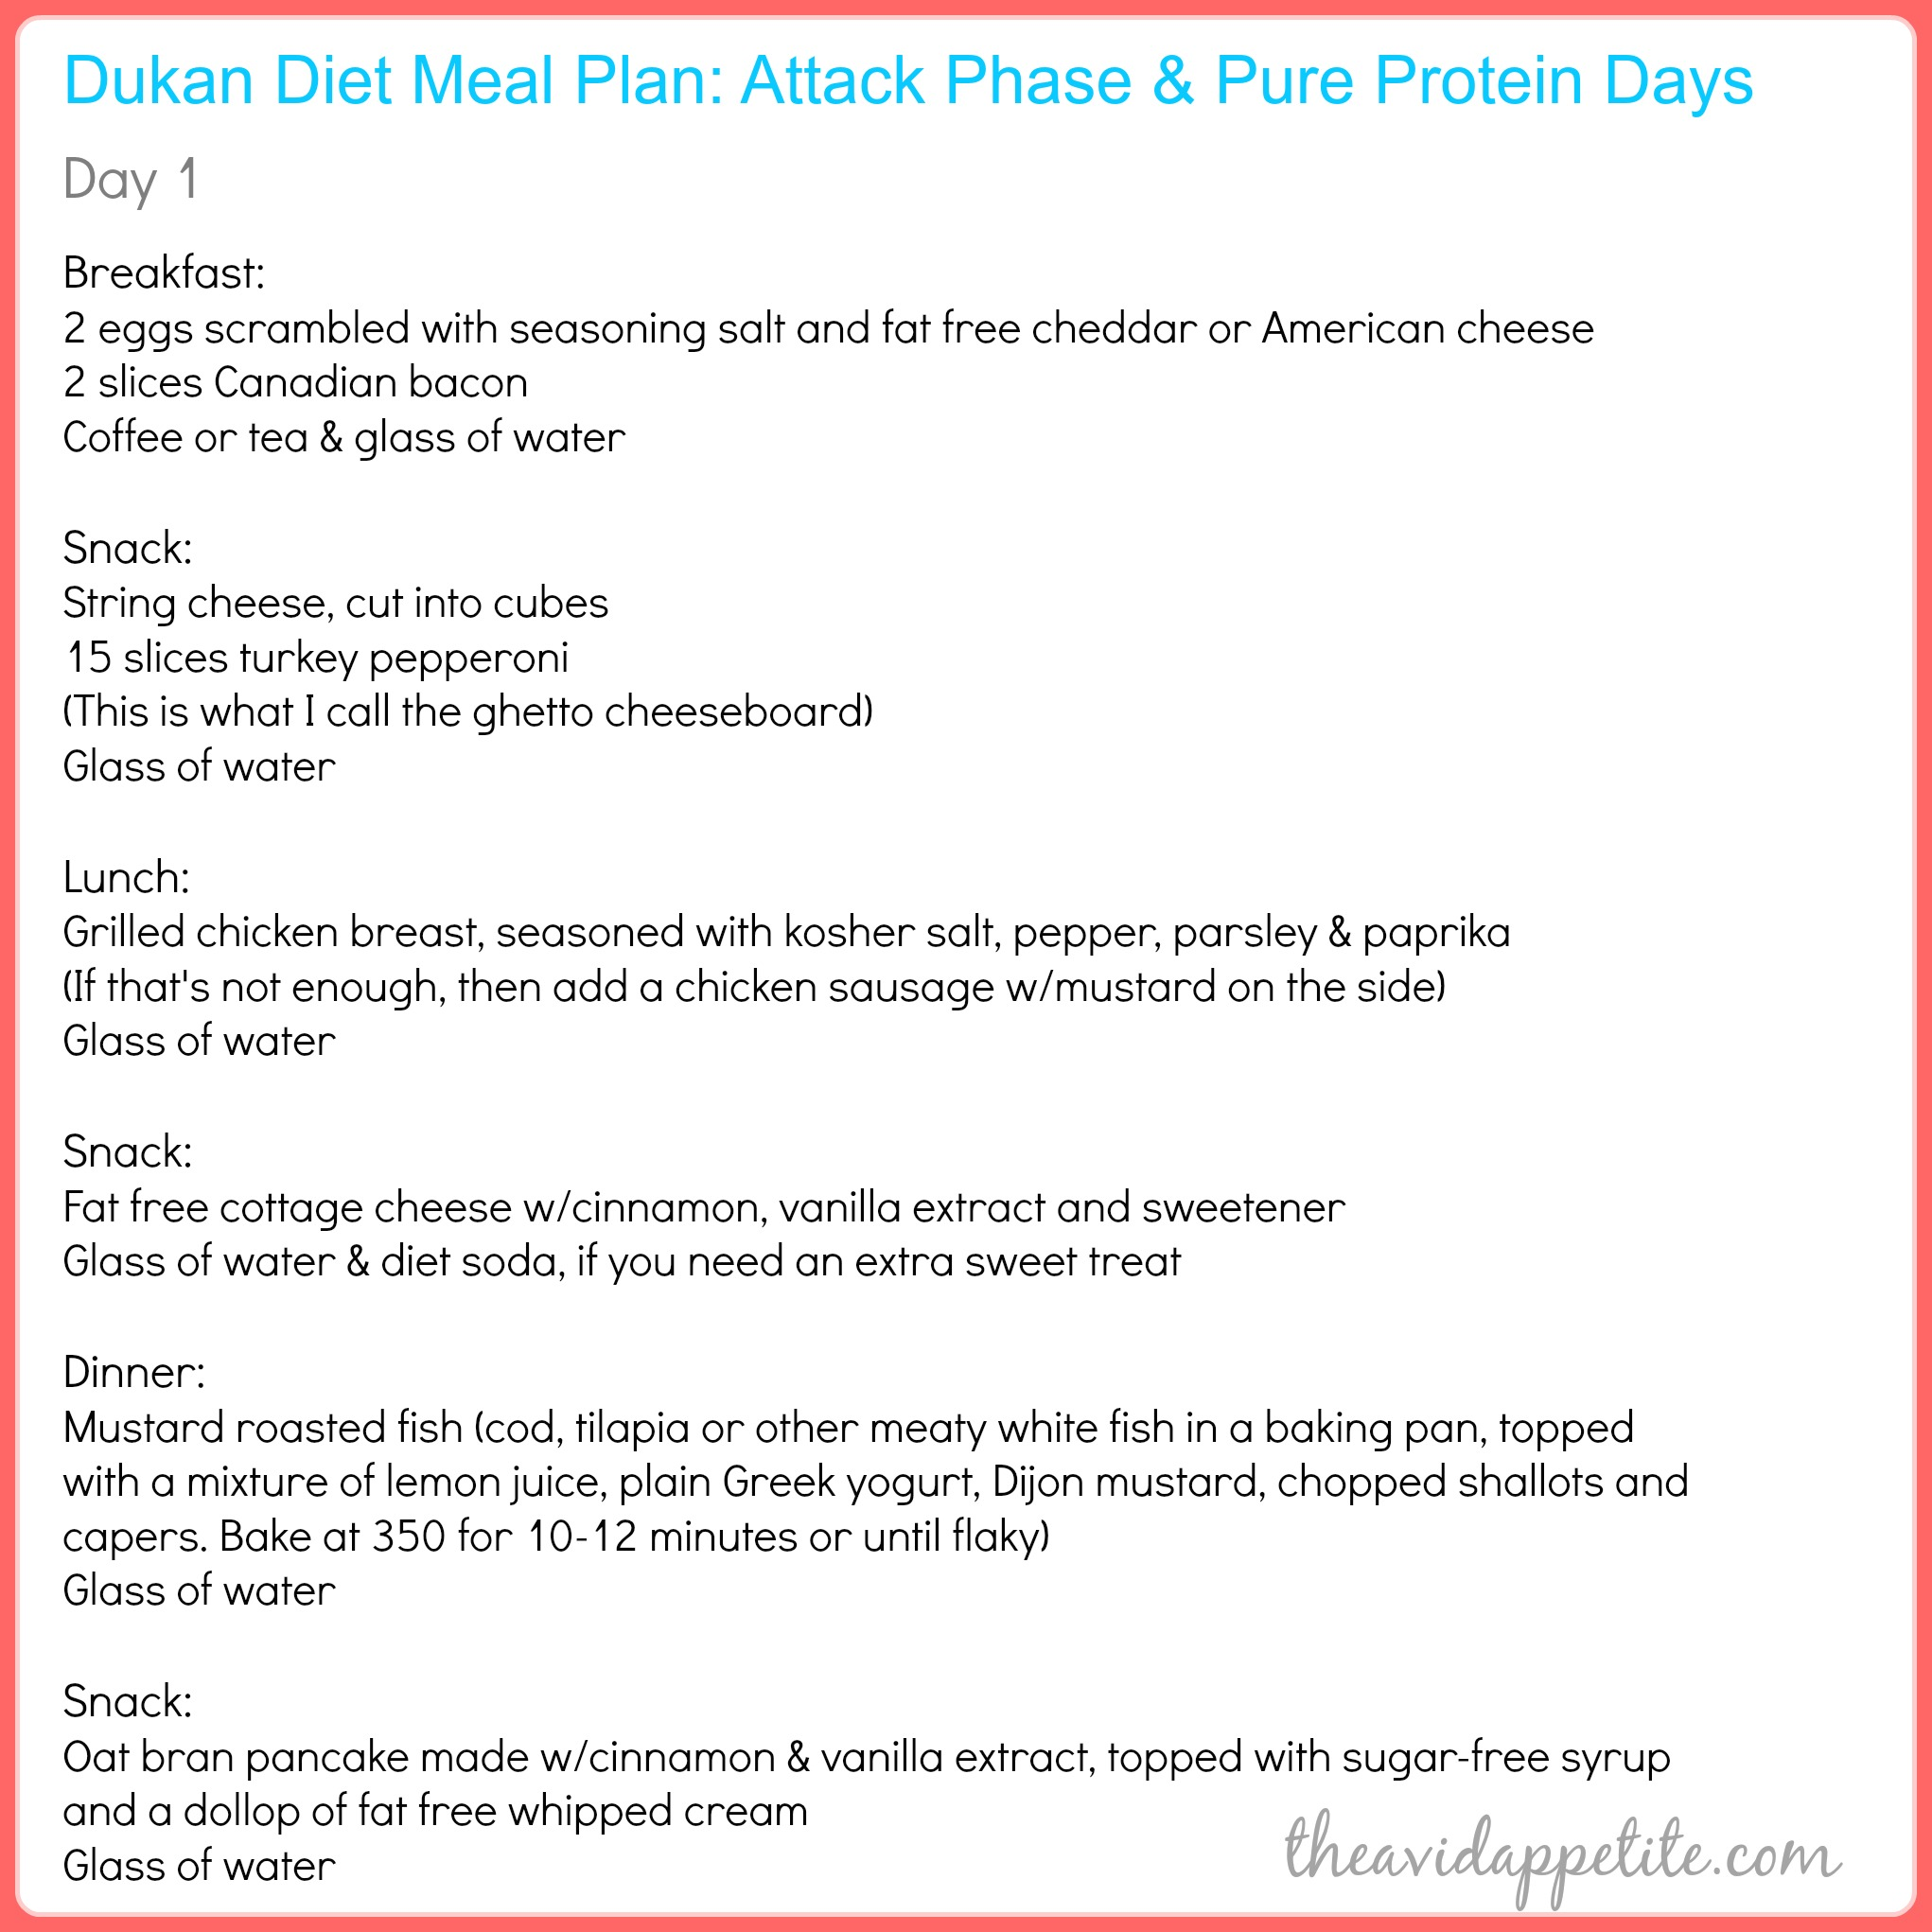 How To Find My House Plans The Avid Appetite The Avid Appetite Dukan Meal Plan